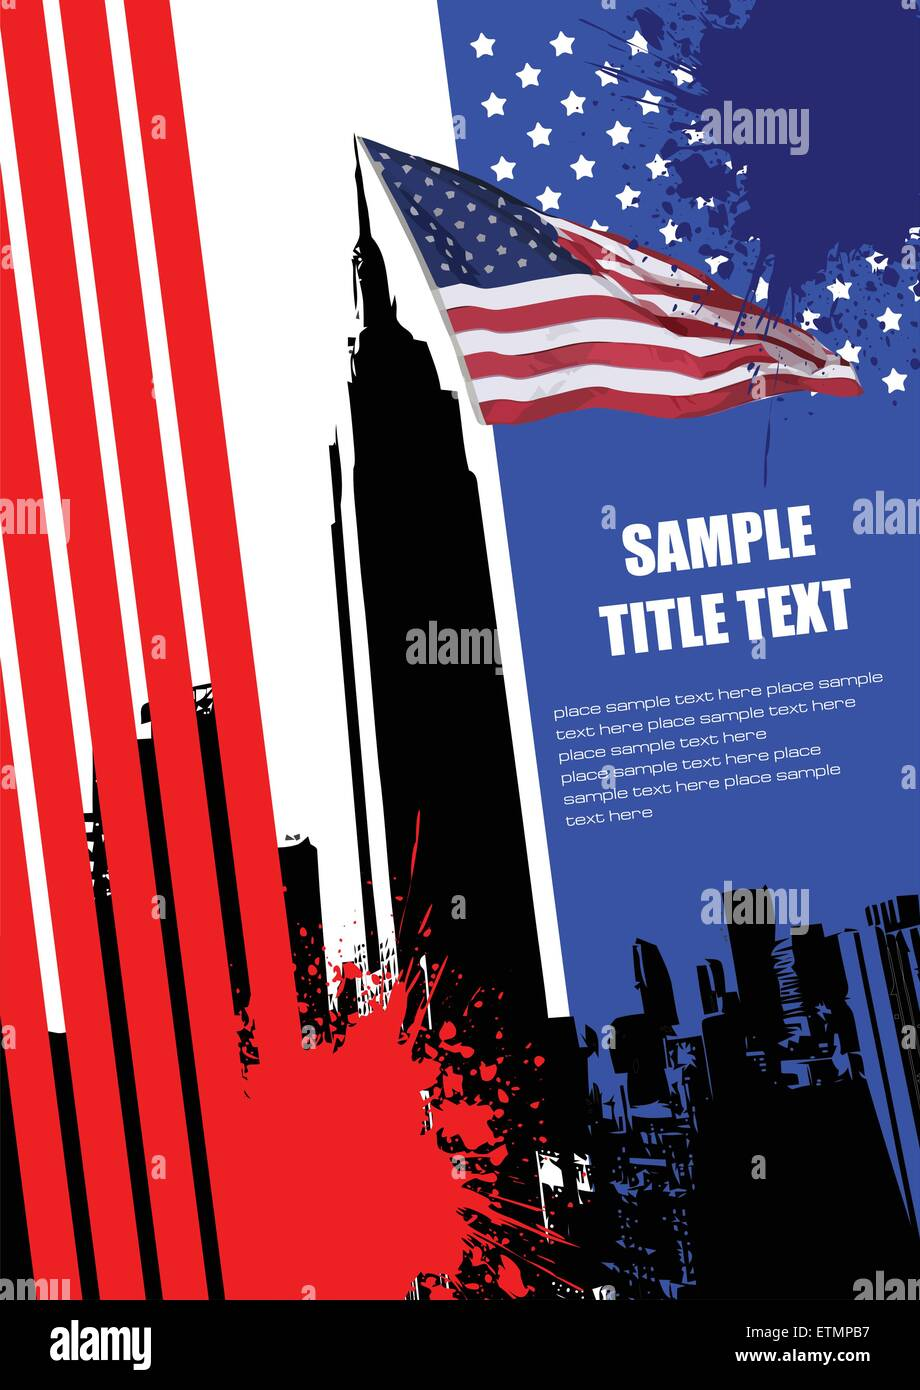 Cover for brochure with USA image and American flag - Stock Vector